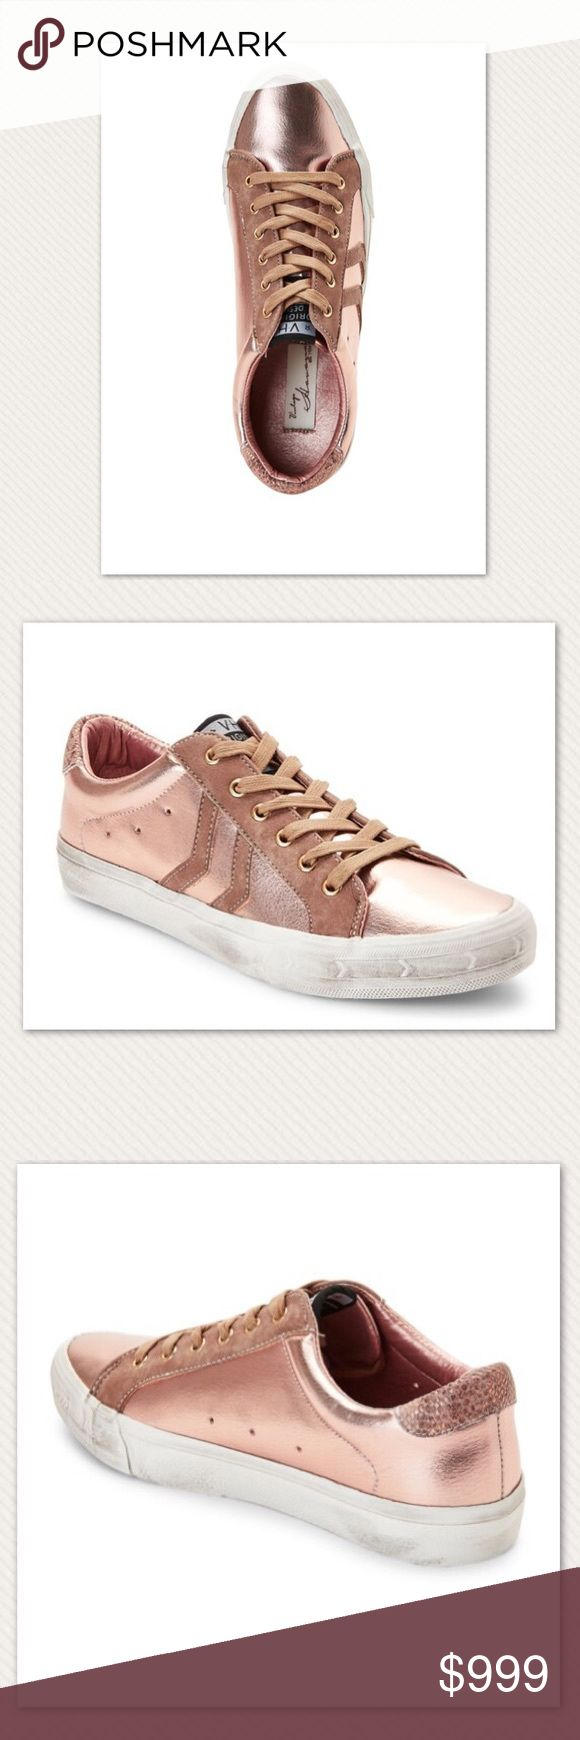 Vintage Havana Metallic Sneakers Authentic new with box. Metallic upper, round toe, faux suede overlays, lace up closure Interior lining, lightly cushioned insole, padded collar, vintage style sole (outsole are made to look worn) Accompanied by dust bag Man made upper/lining/sole Imported. Color: Rose Gold, Women's Size 11 ❗️No Trade❗️ Vintage Havana Shoes Sneakers